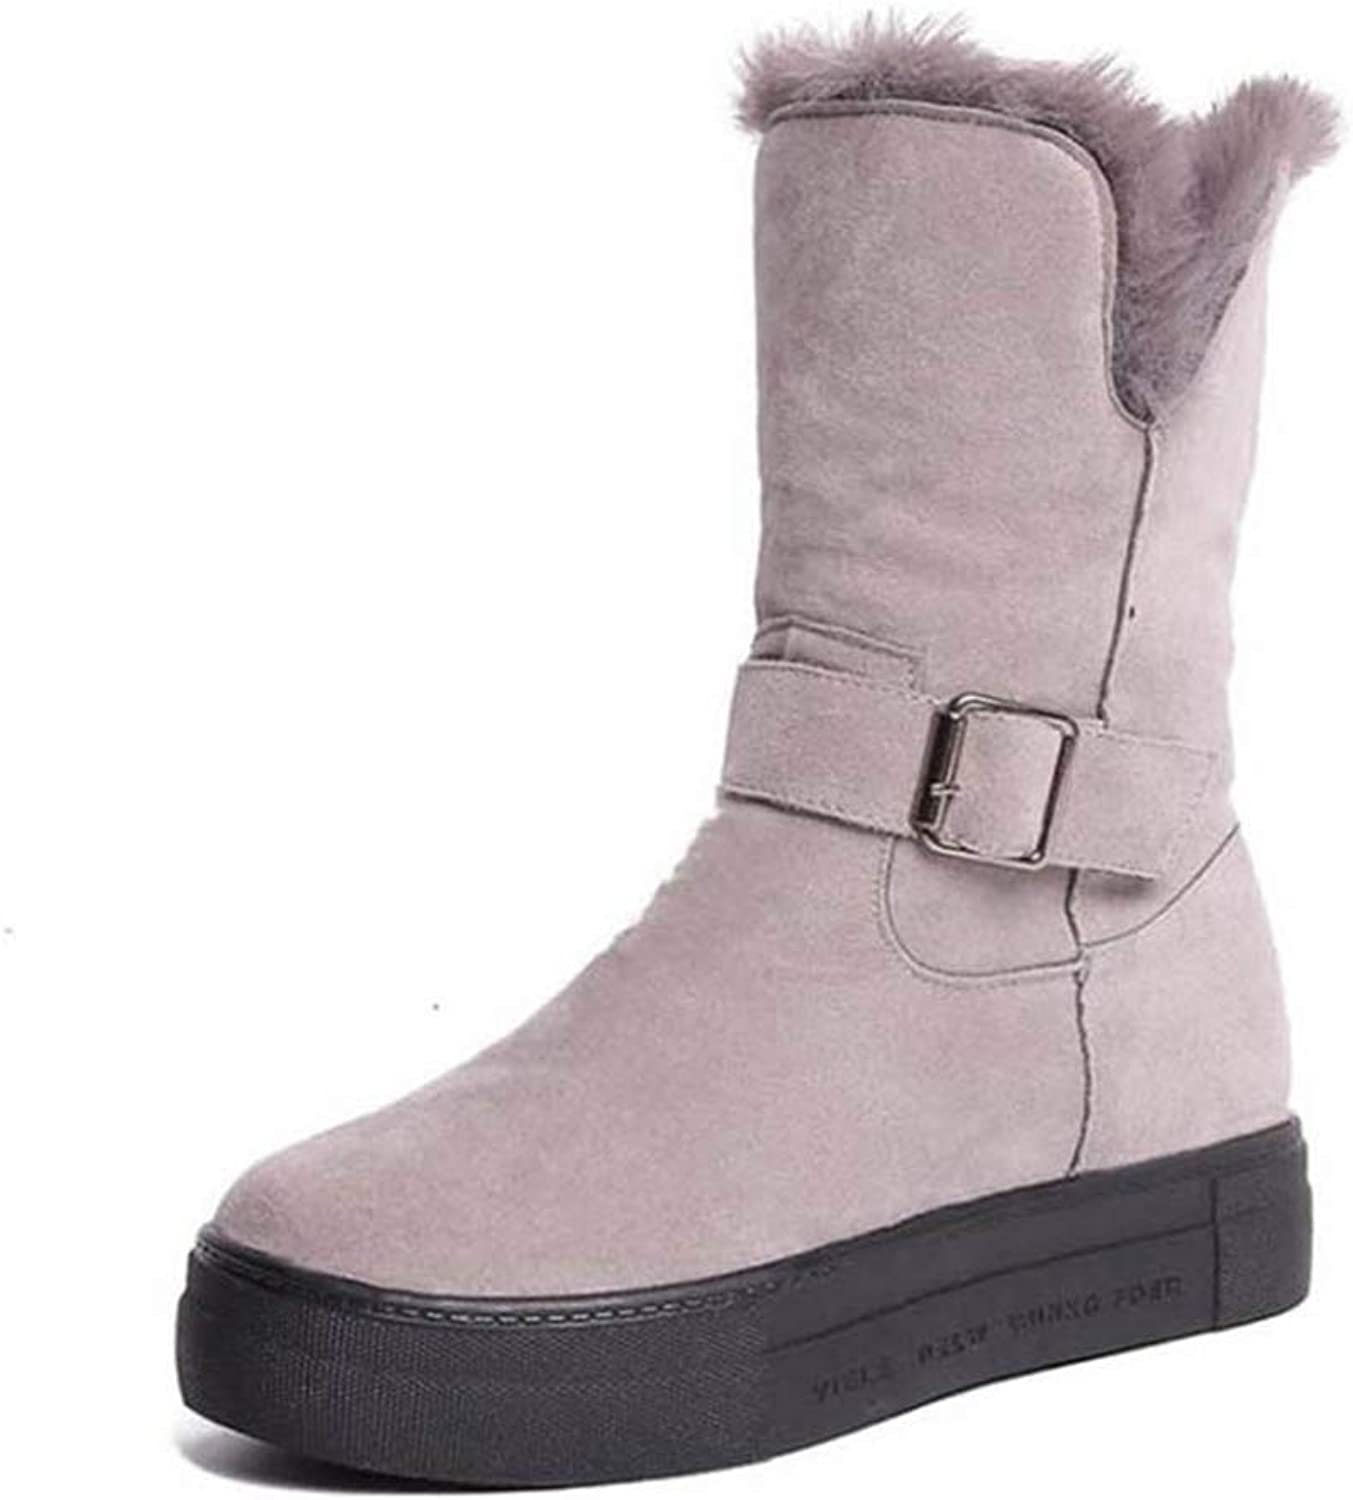 Women's Short Boots Plush Fur Winter Warm shoes Round Toe Mid Calf Boots Fashion Concise Ladies shoes